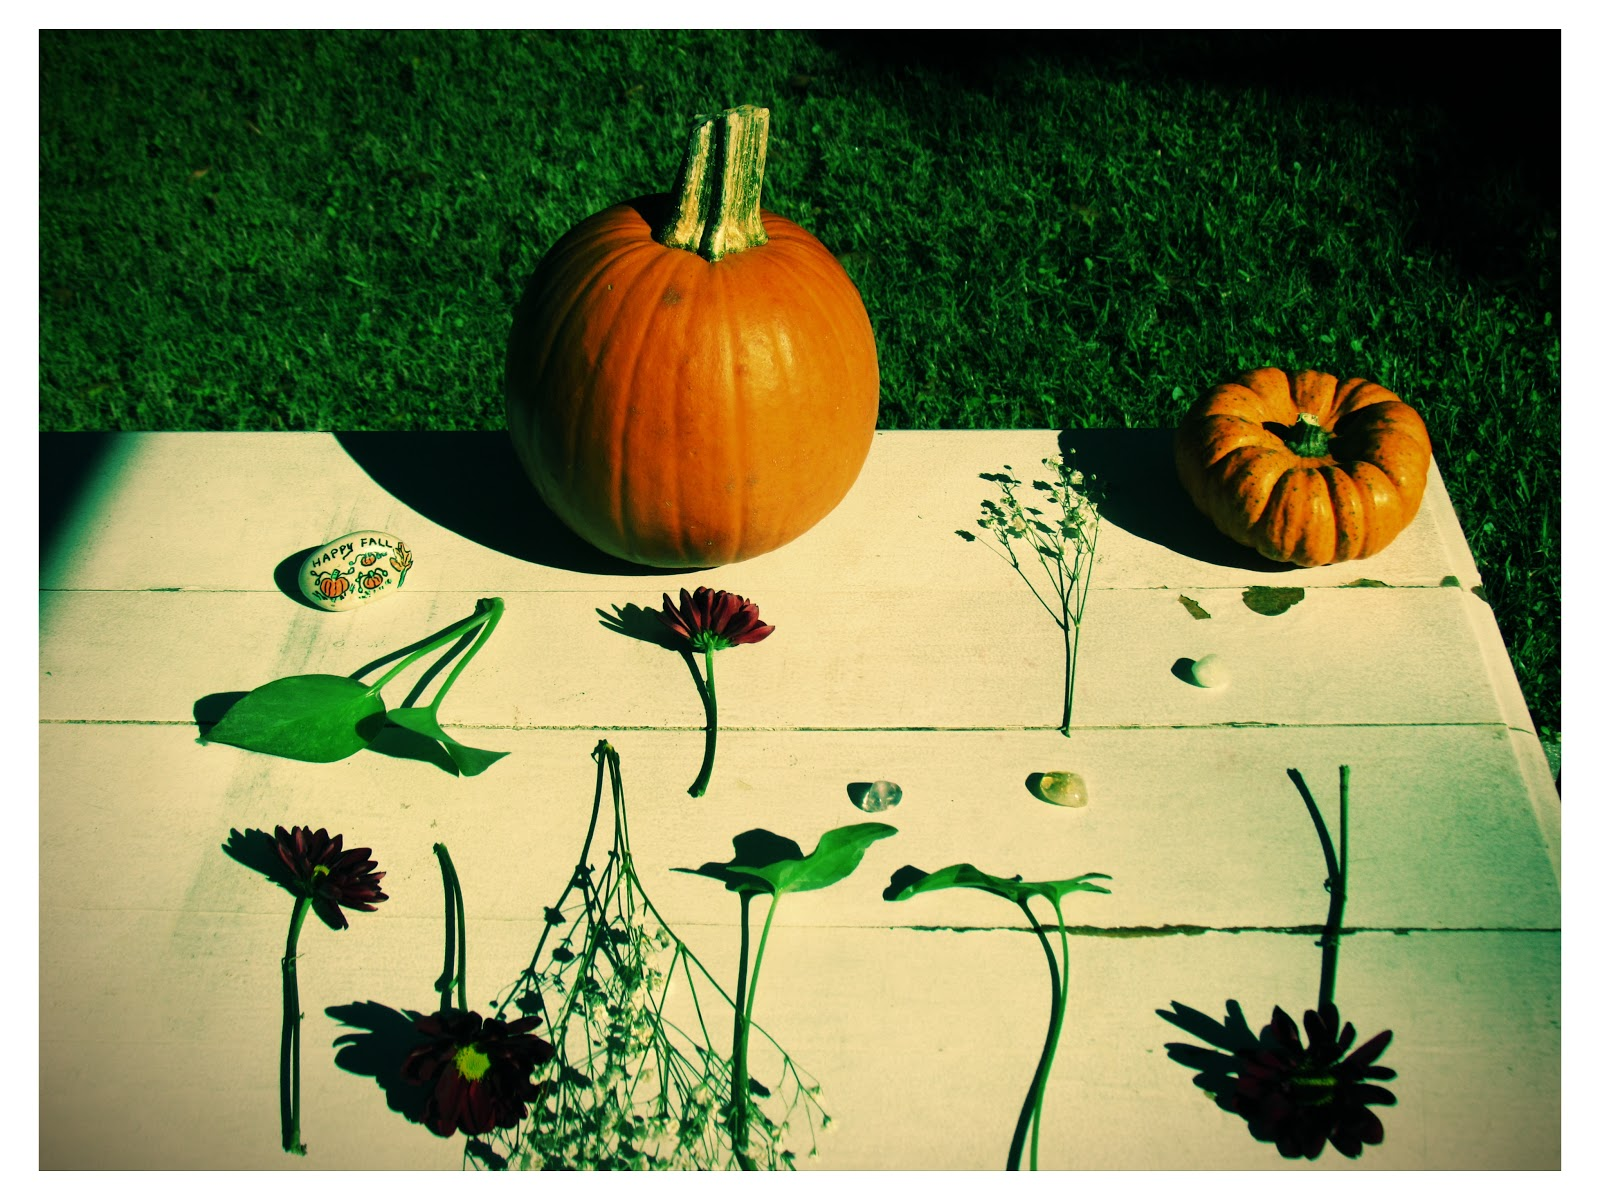 Warm, autumn pumpkin tabletop display in mother nature in Florida